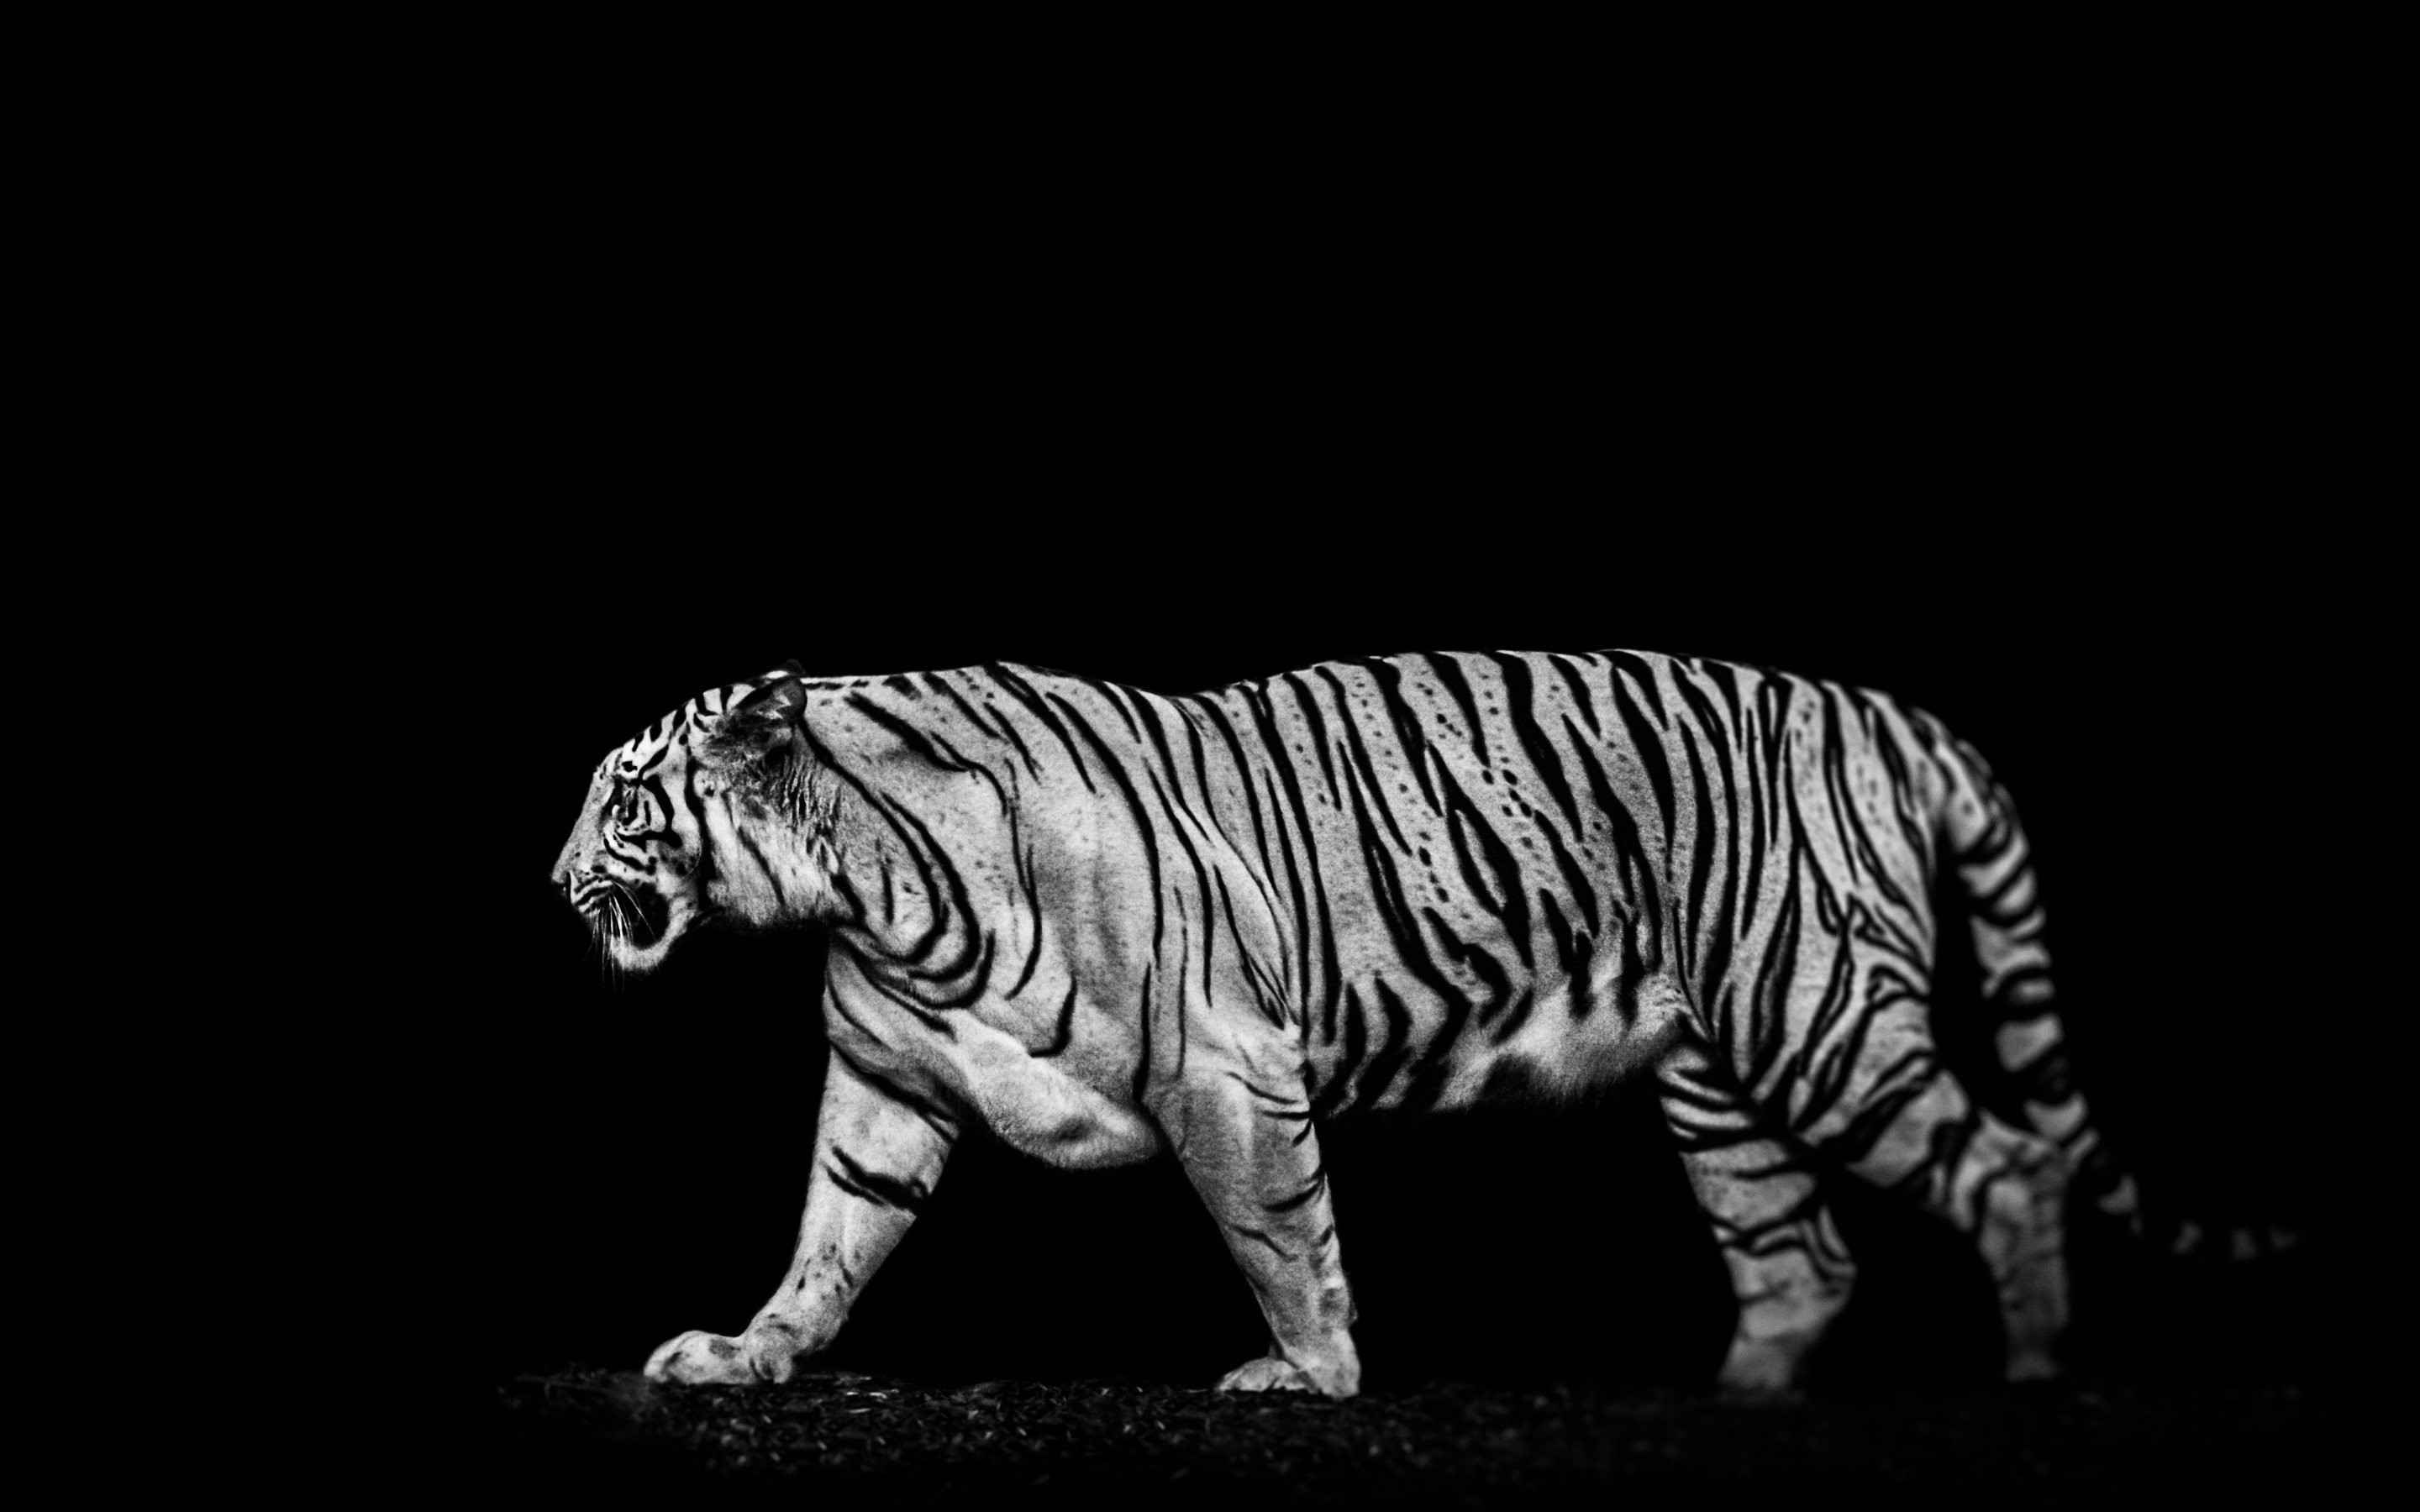 4K HD Wallpaper: Tiger Out of the Dark